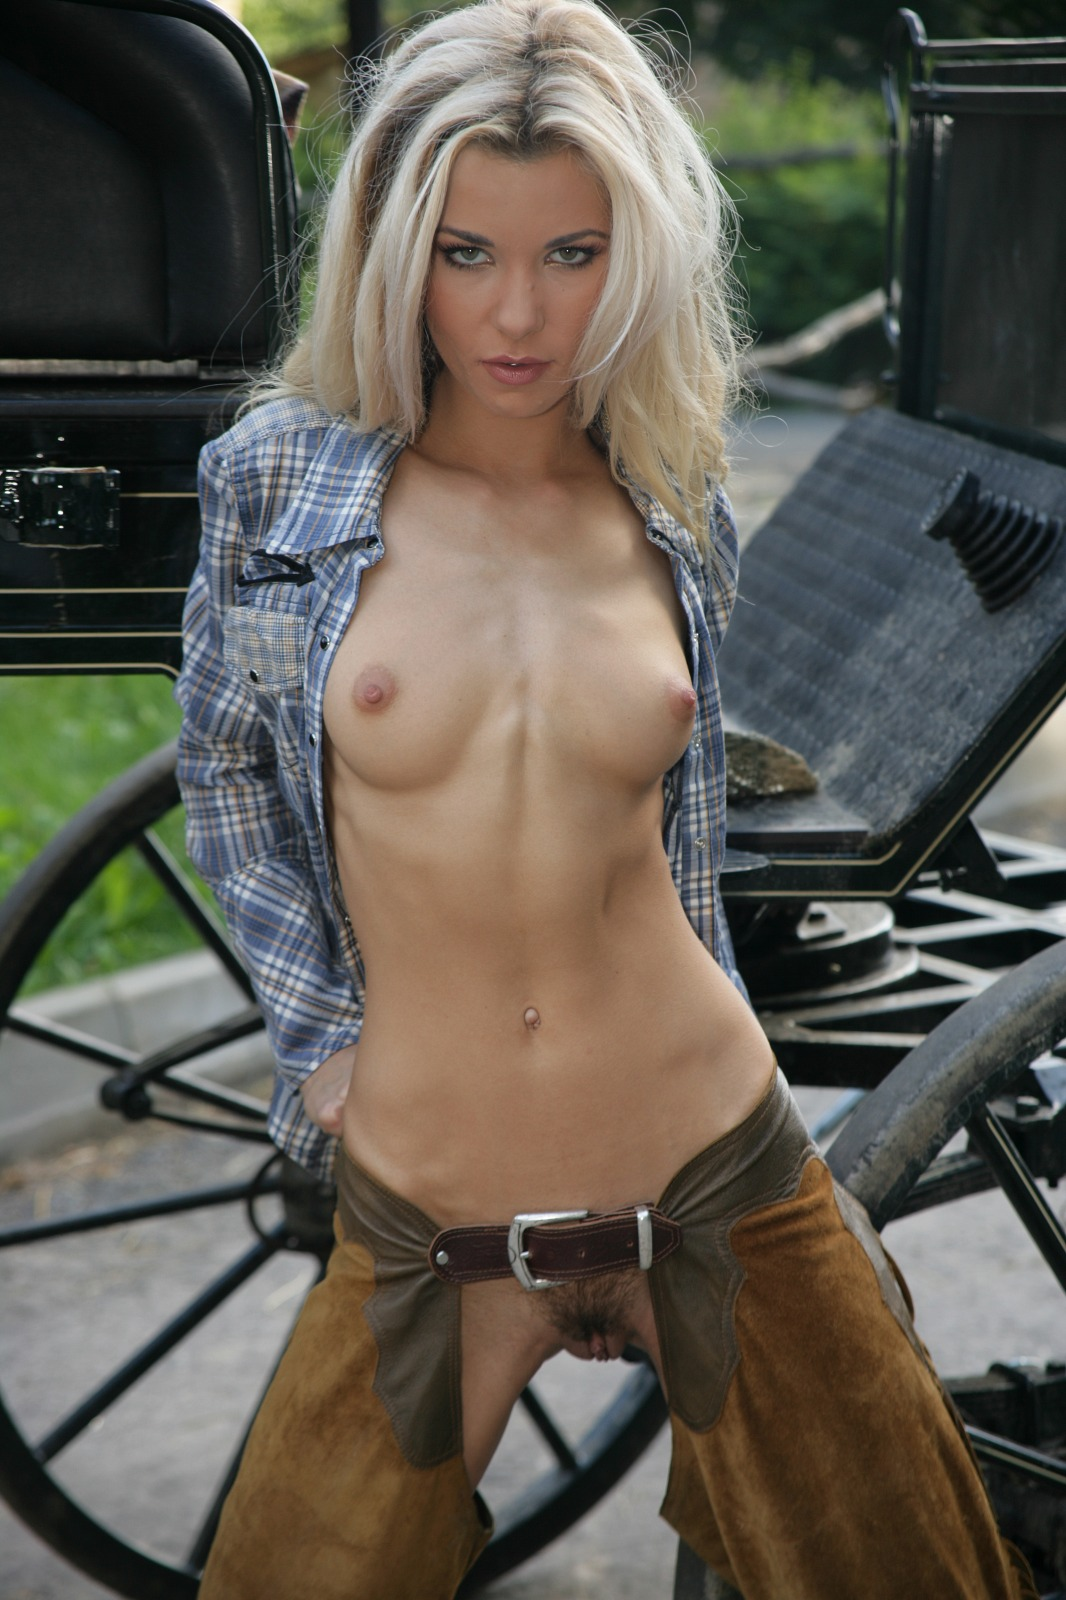 Check Out This Hot Naked Cowgirl - Mobile Porn Movies-5632